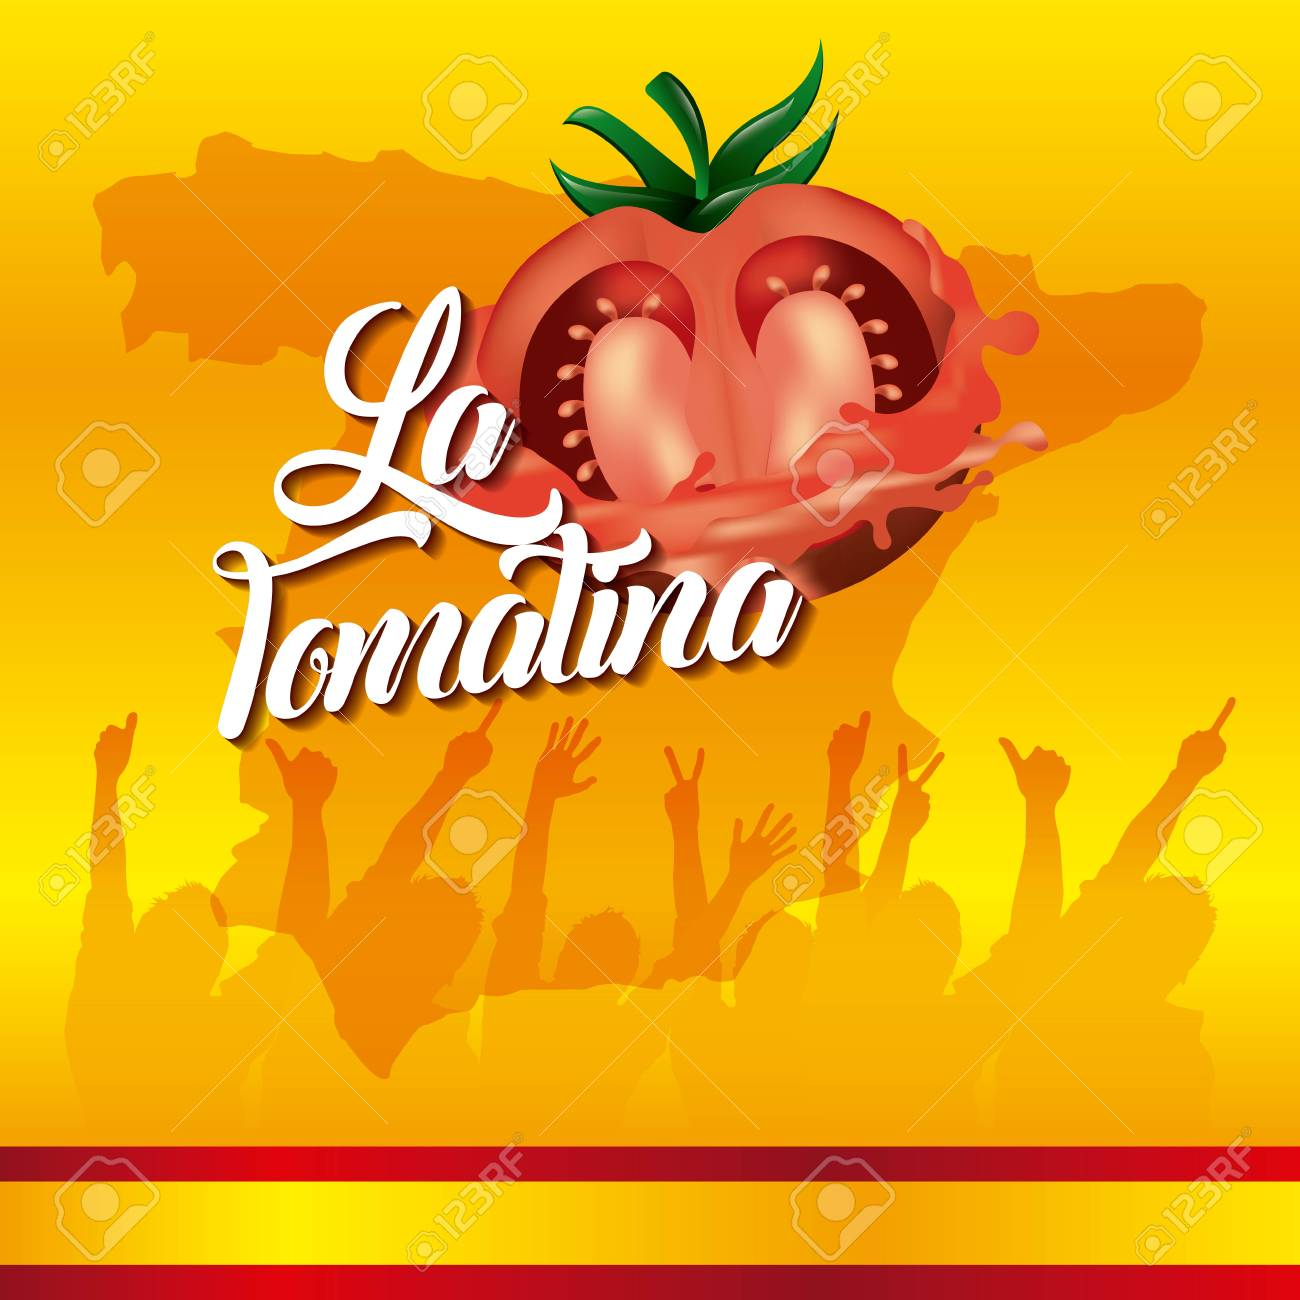 la tomatina yellow background festival people hands up vector illustration - 98790637